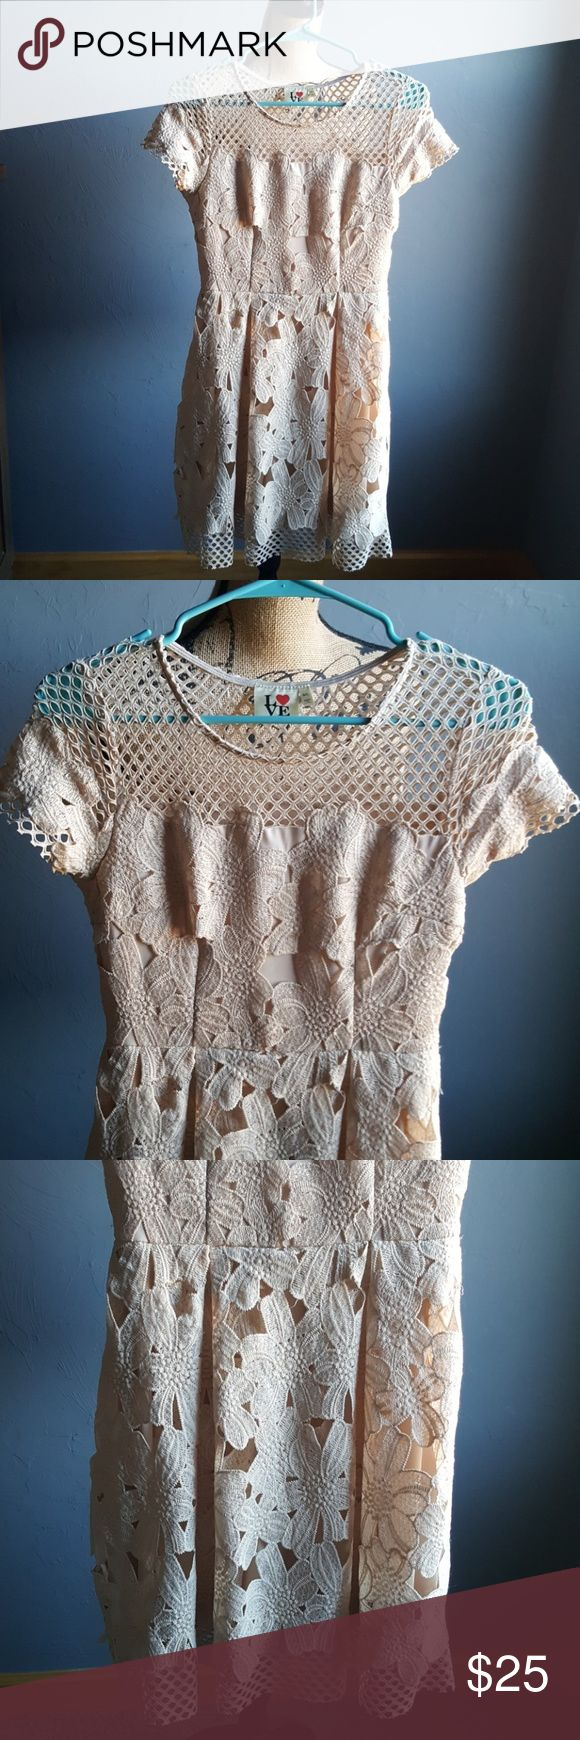 "Love Point Floral Lace Embroidered Boho Dress Awesome floral lace embroidered dress Perfect for the beach or a night out  Dress it up or down In great condition Lined Bust 16"" Waist 13.5"" Length 34"" Love Point Dresses"